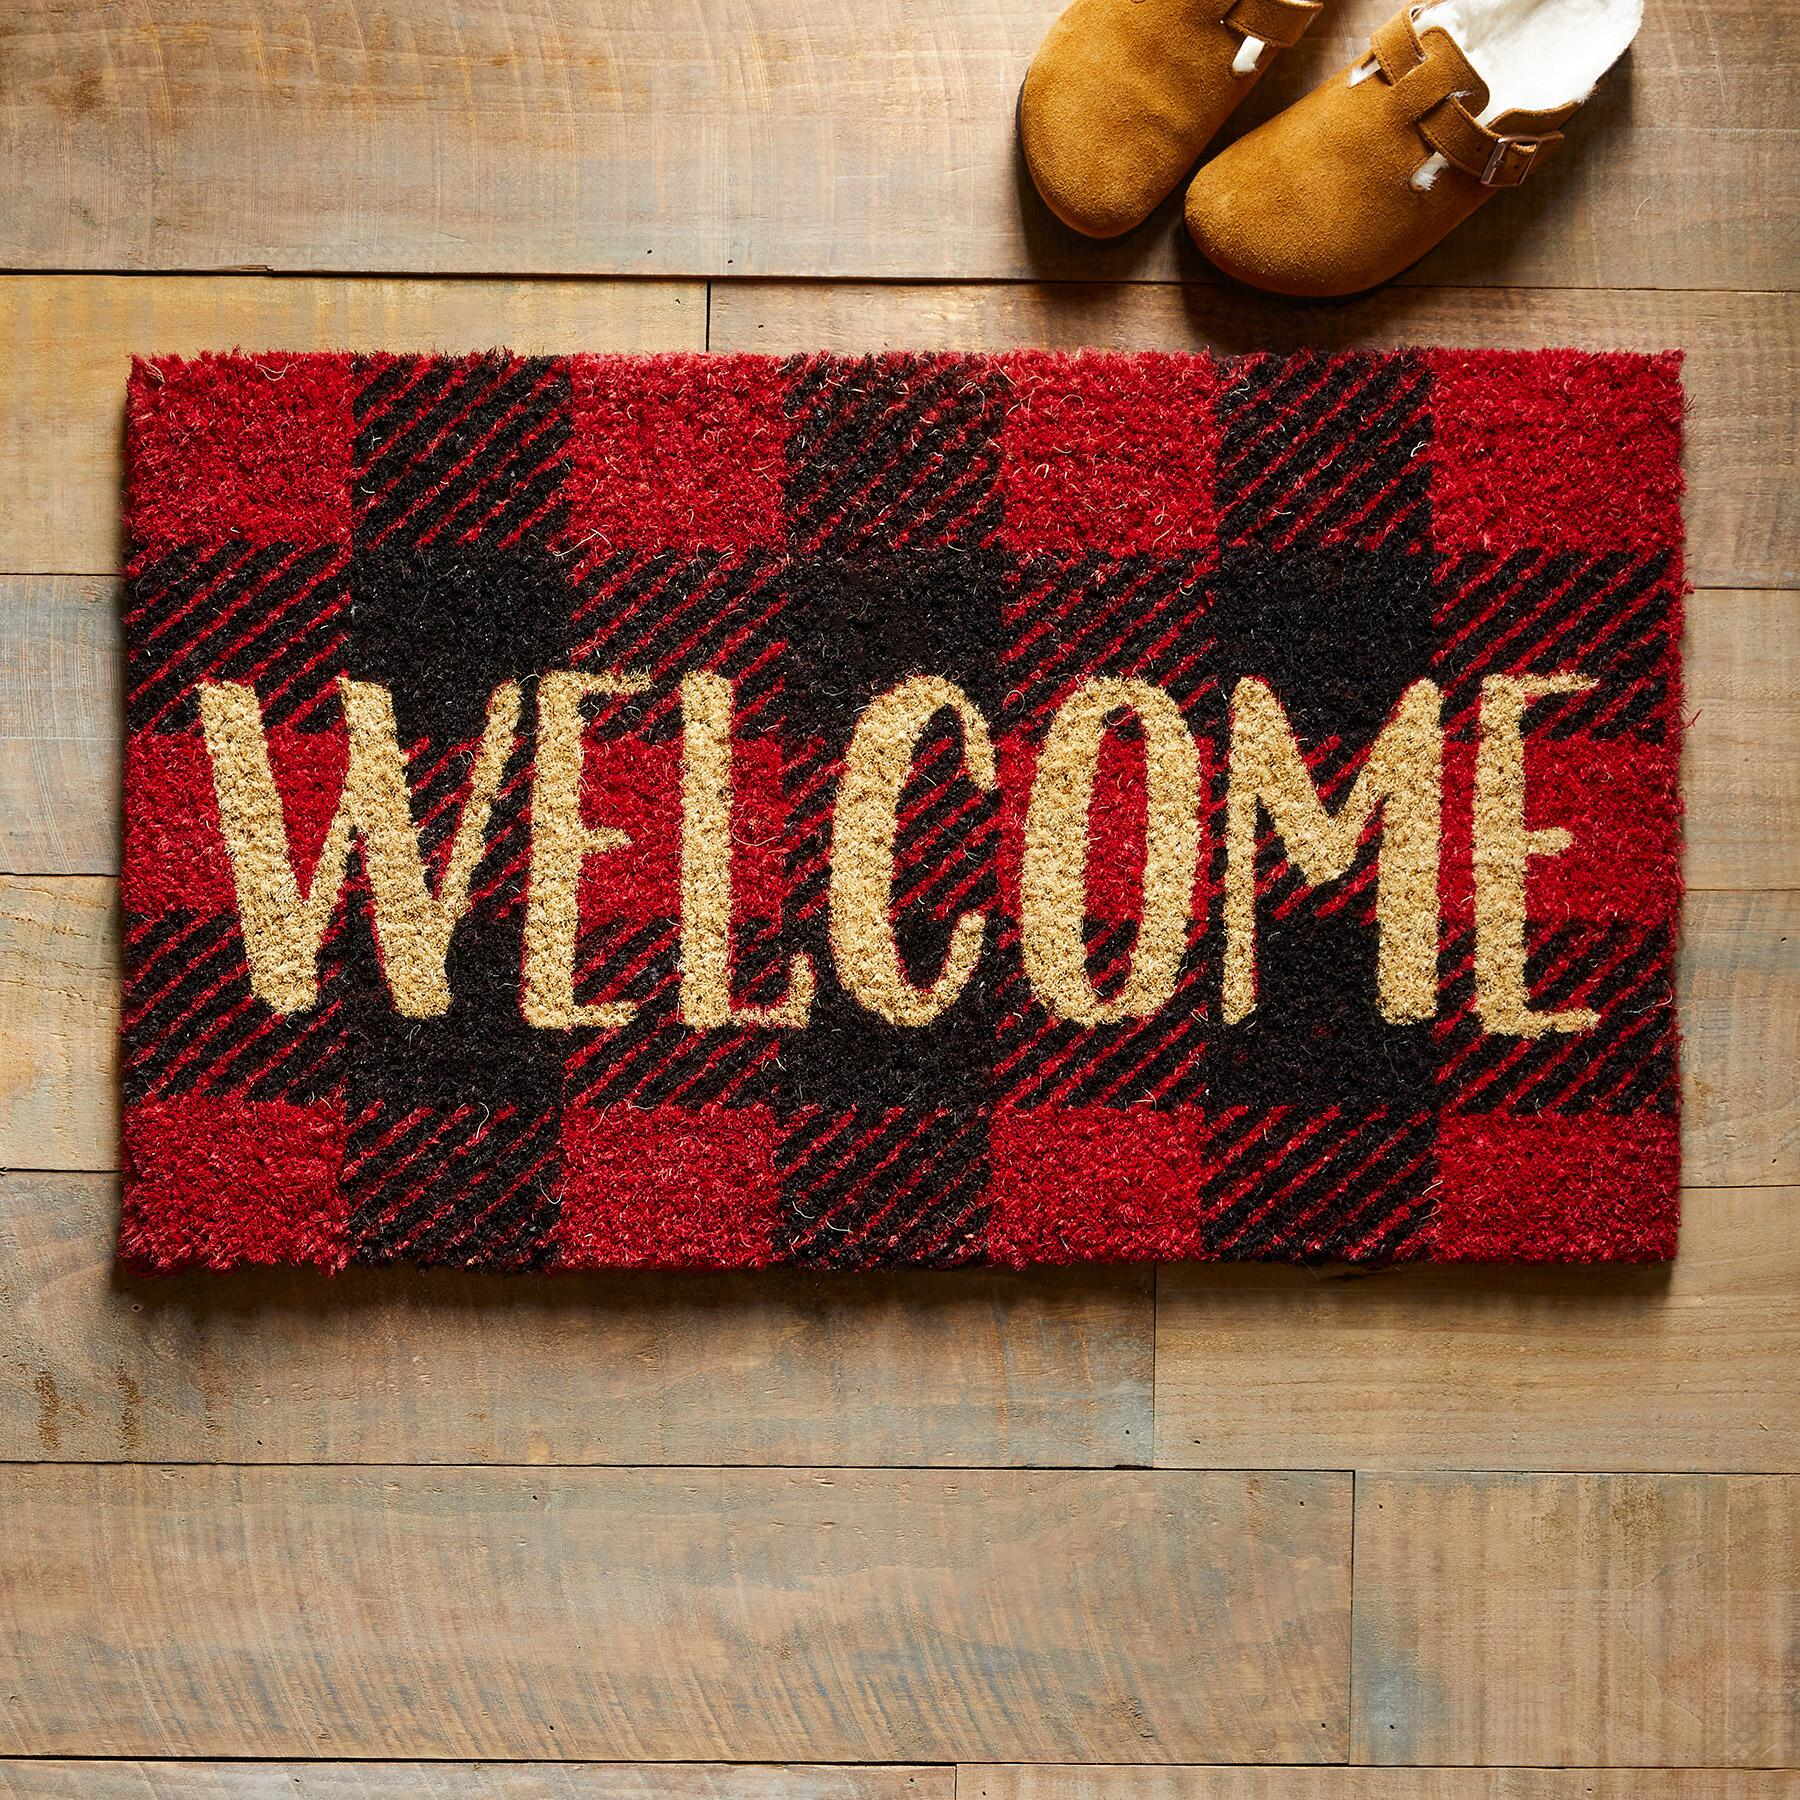 Red plaid welcome mat for farmhouse style and country charm - Sundance Catalog. #buffaloplaid #christmasdoormat